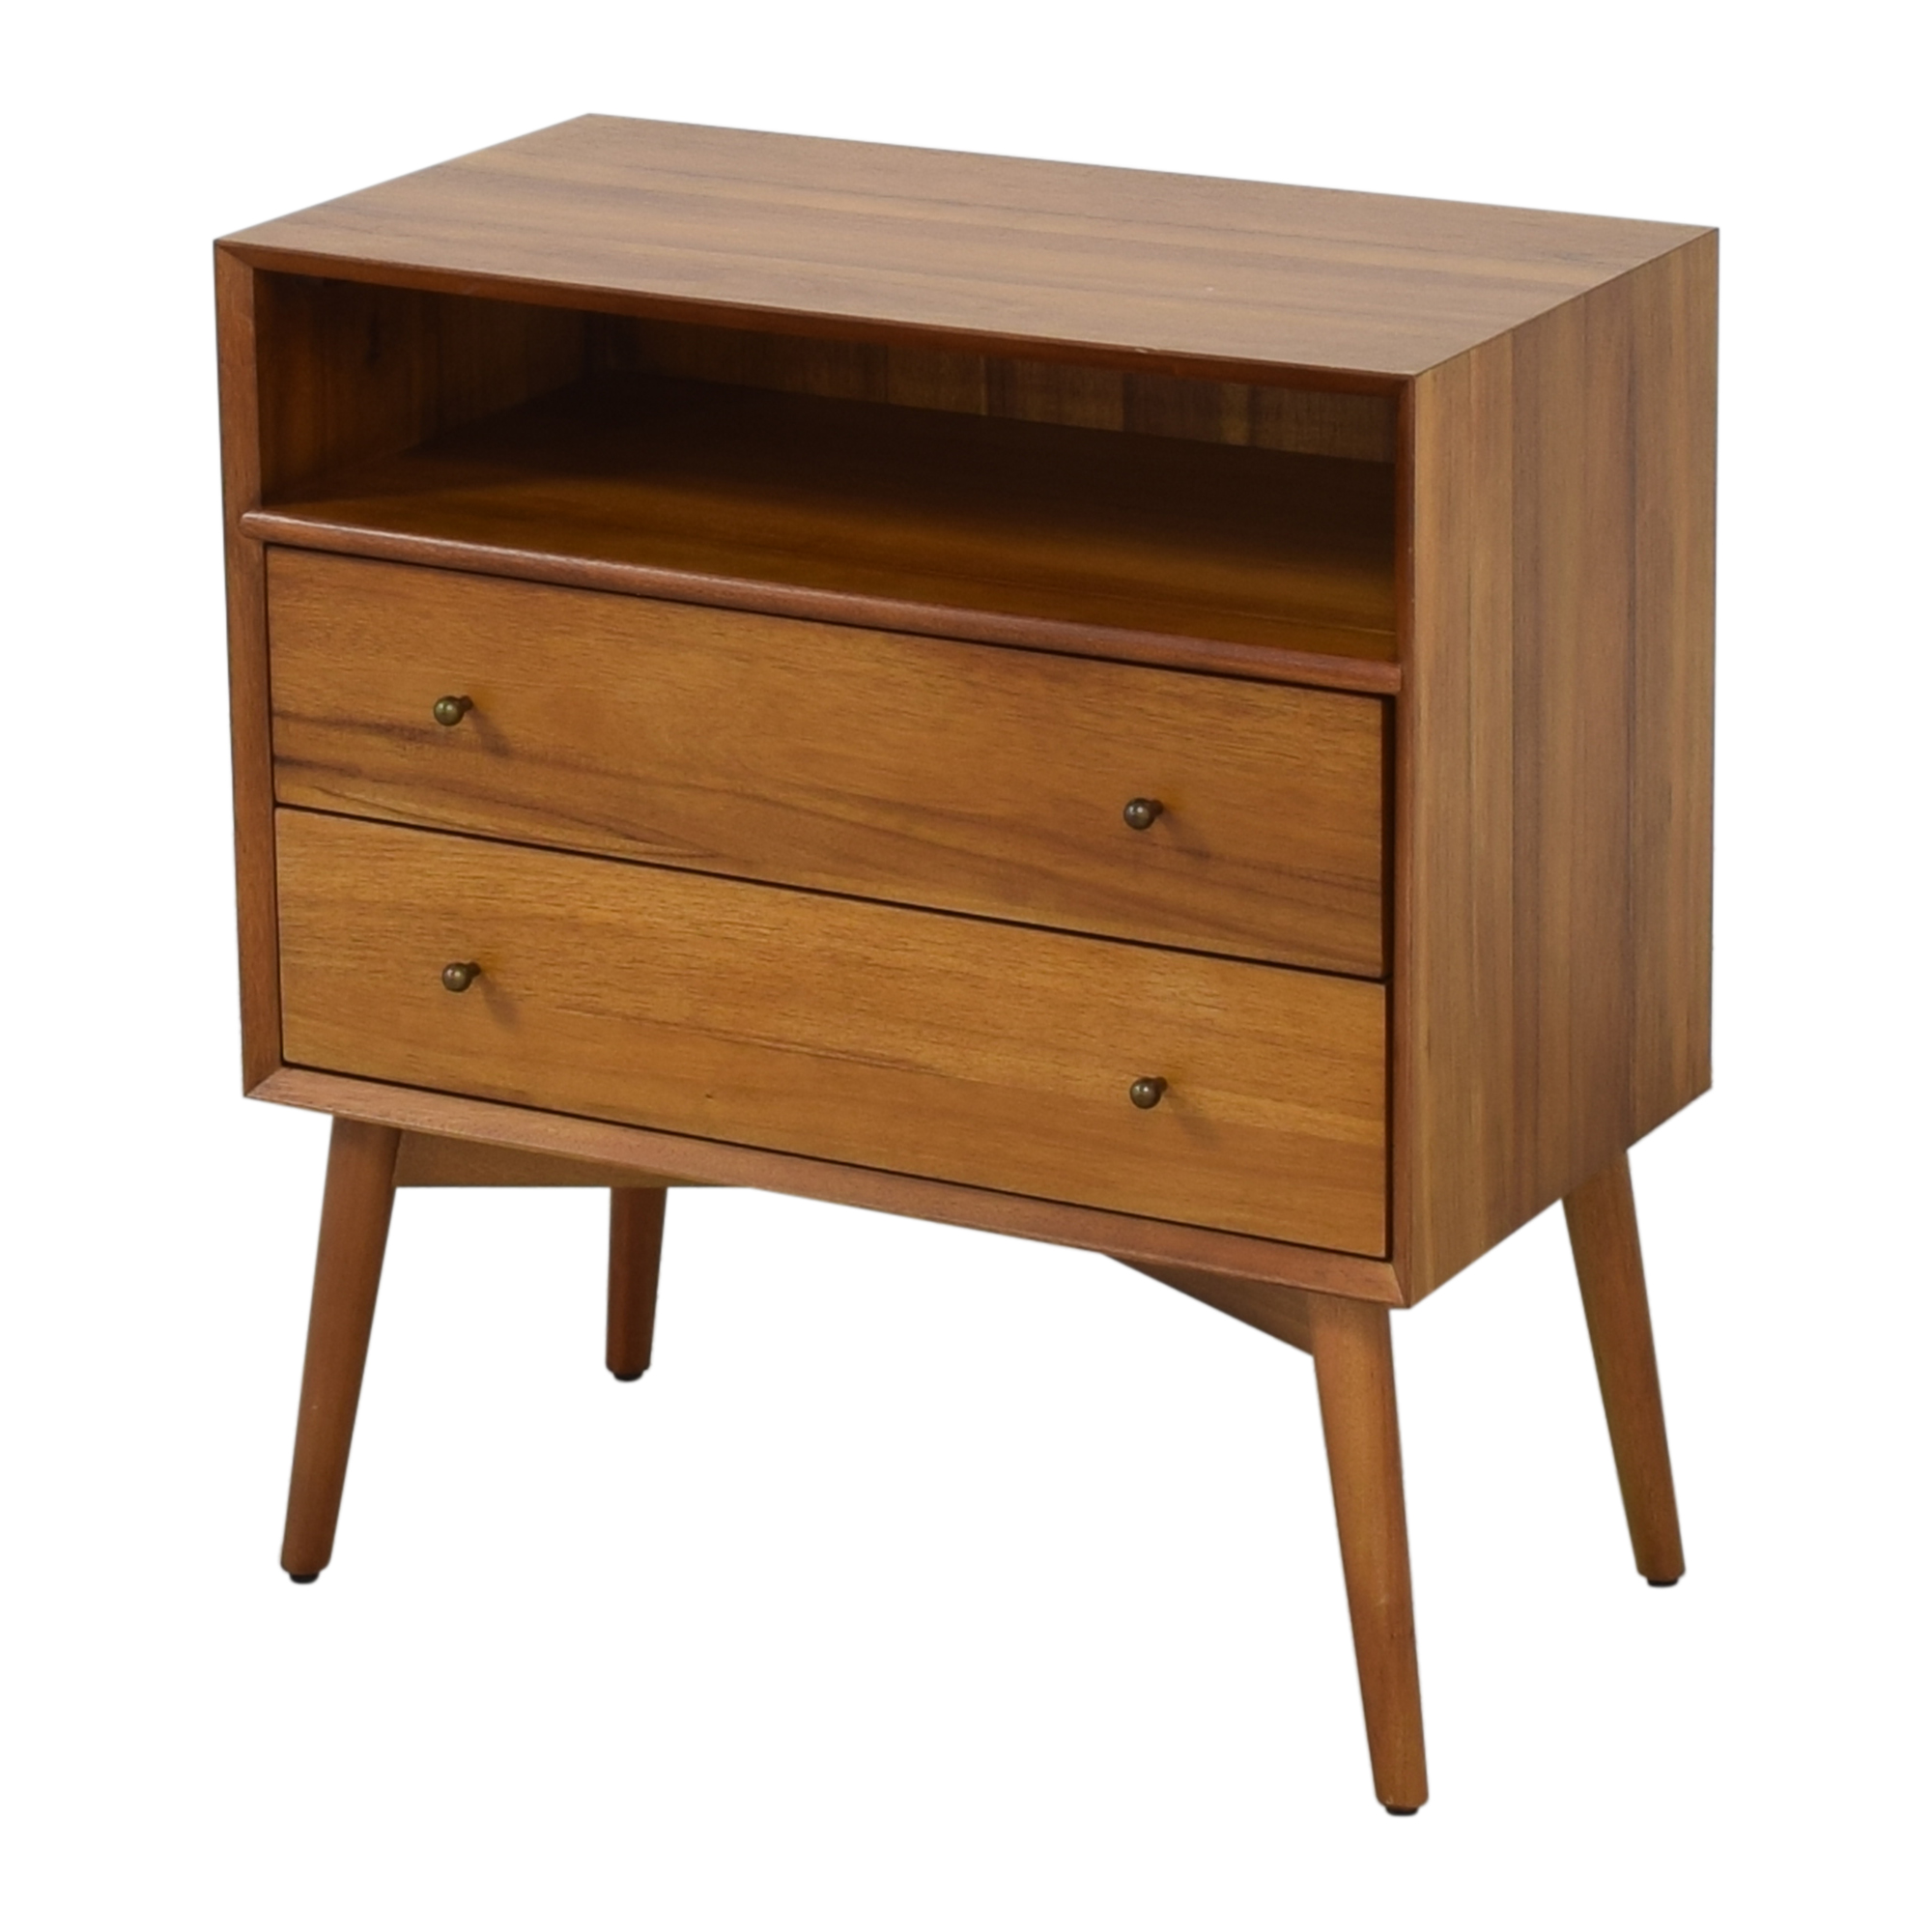 West Elm West Elm Mid Century Grand Night Stand for sale